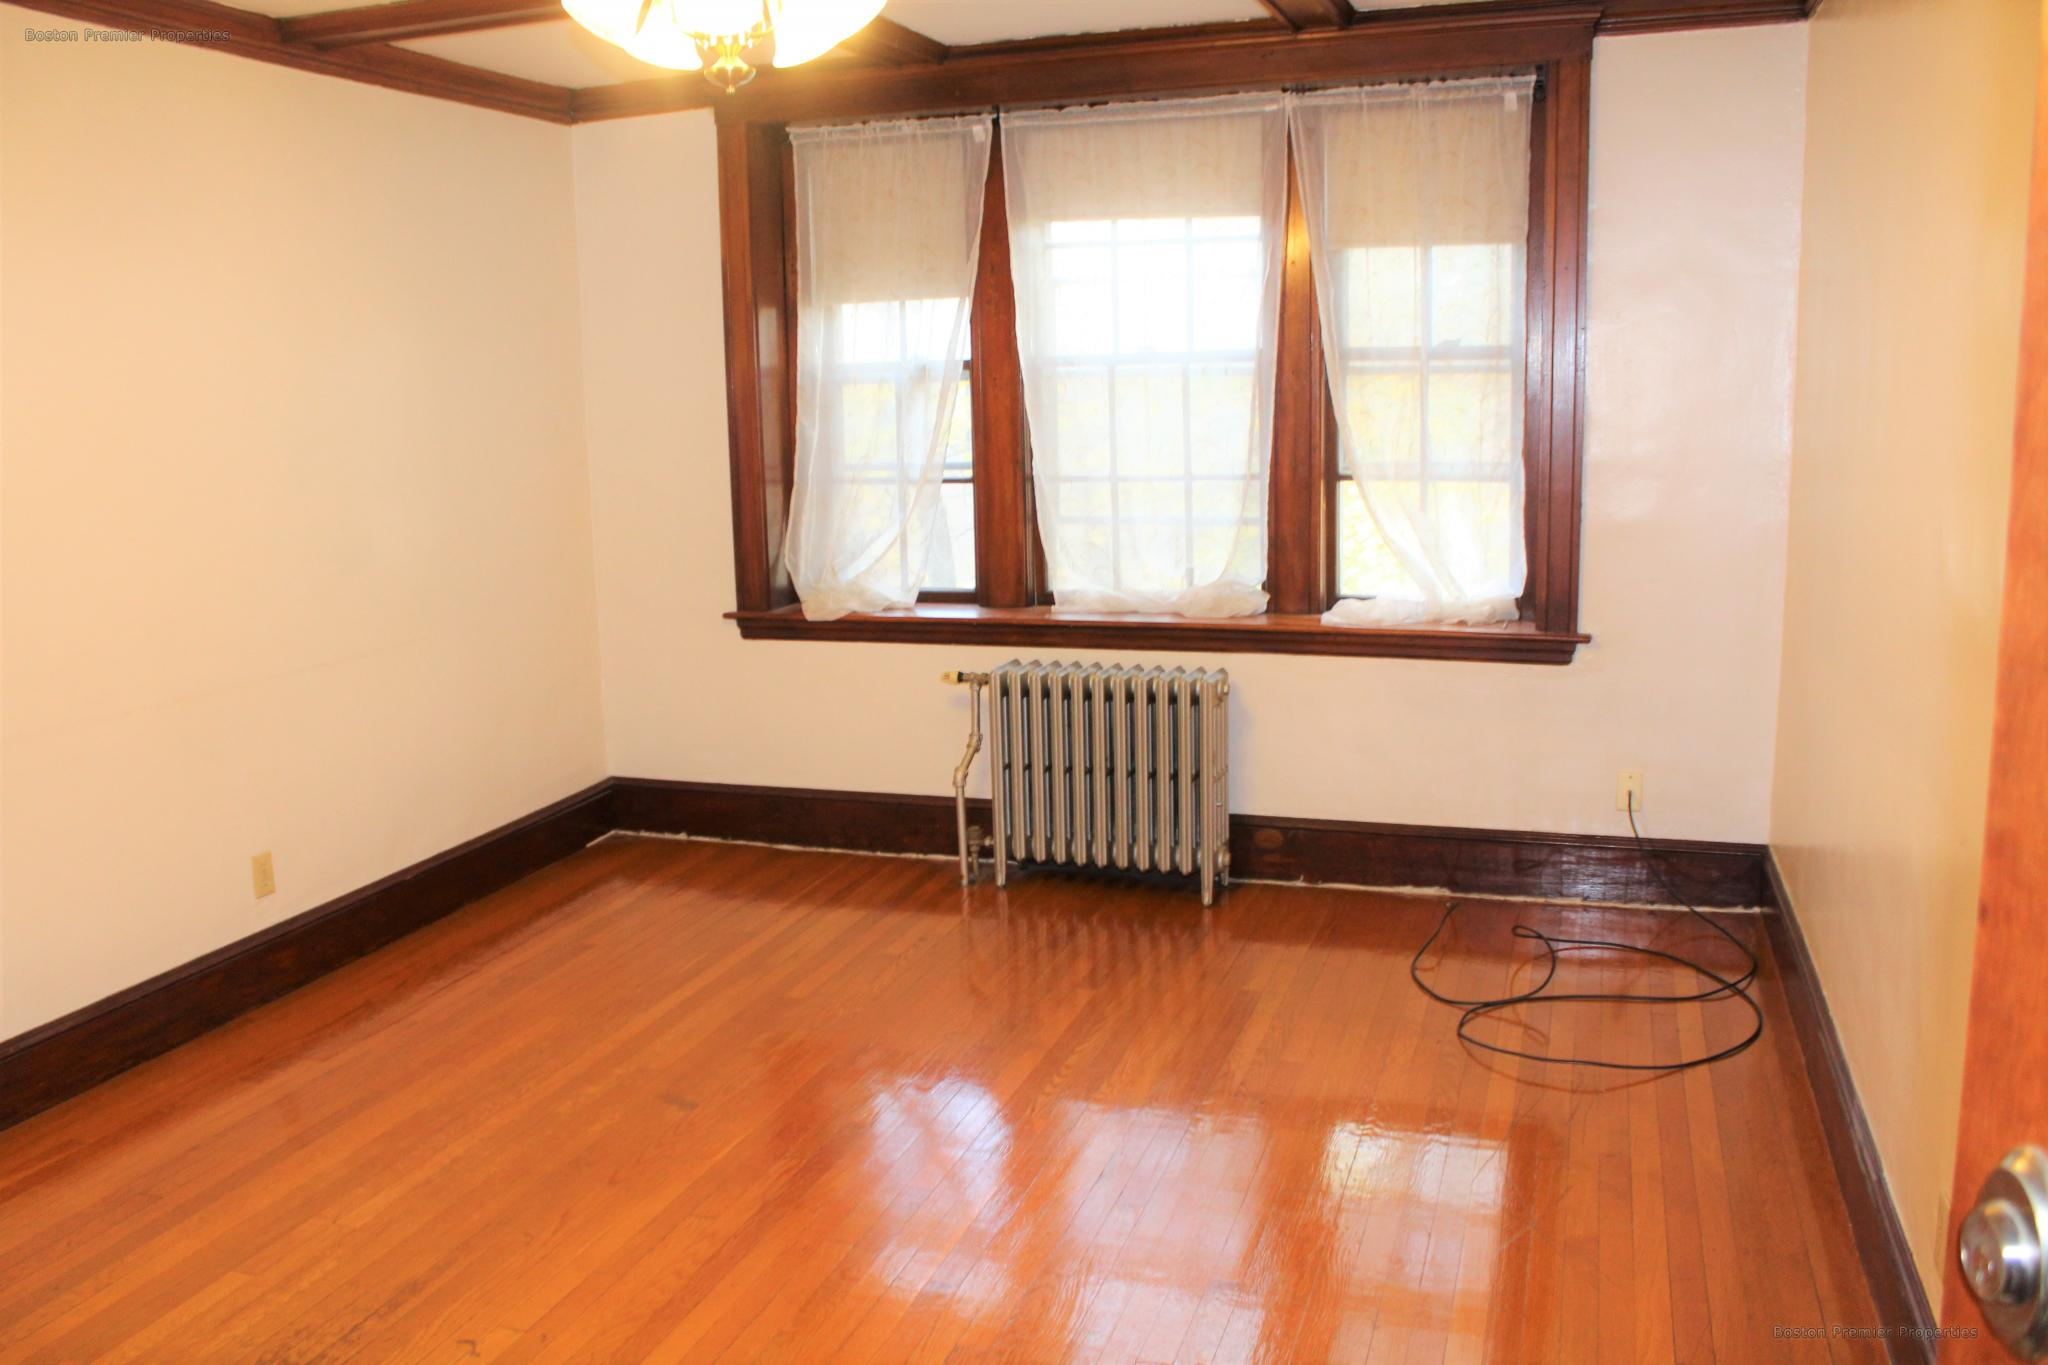 AWESOME 1 BEDROOM APT. ACROSS FROM QUINCY CENTER TRAIN